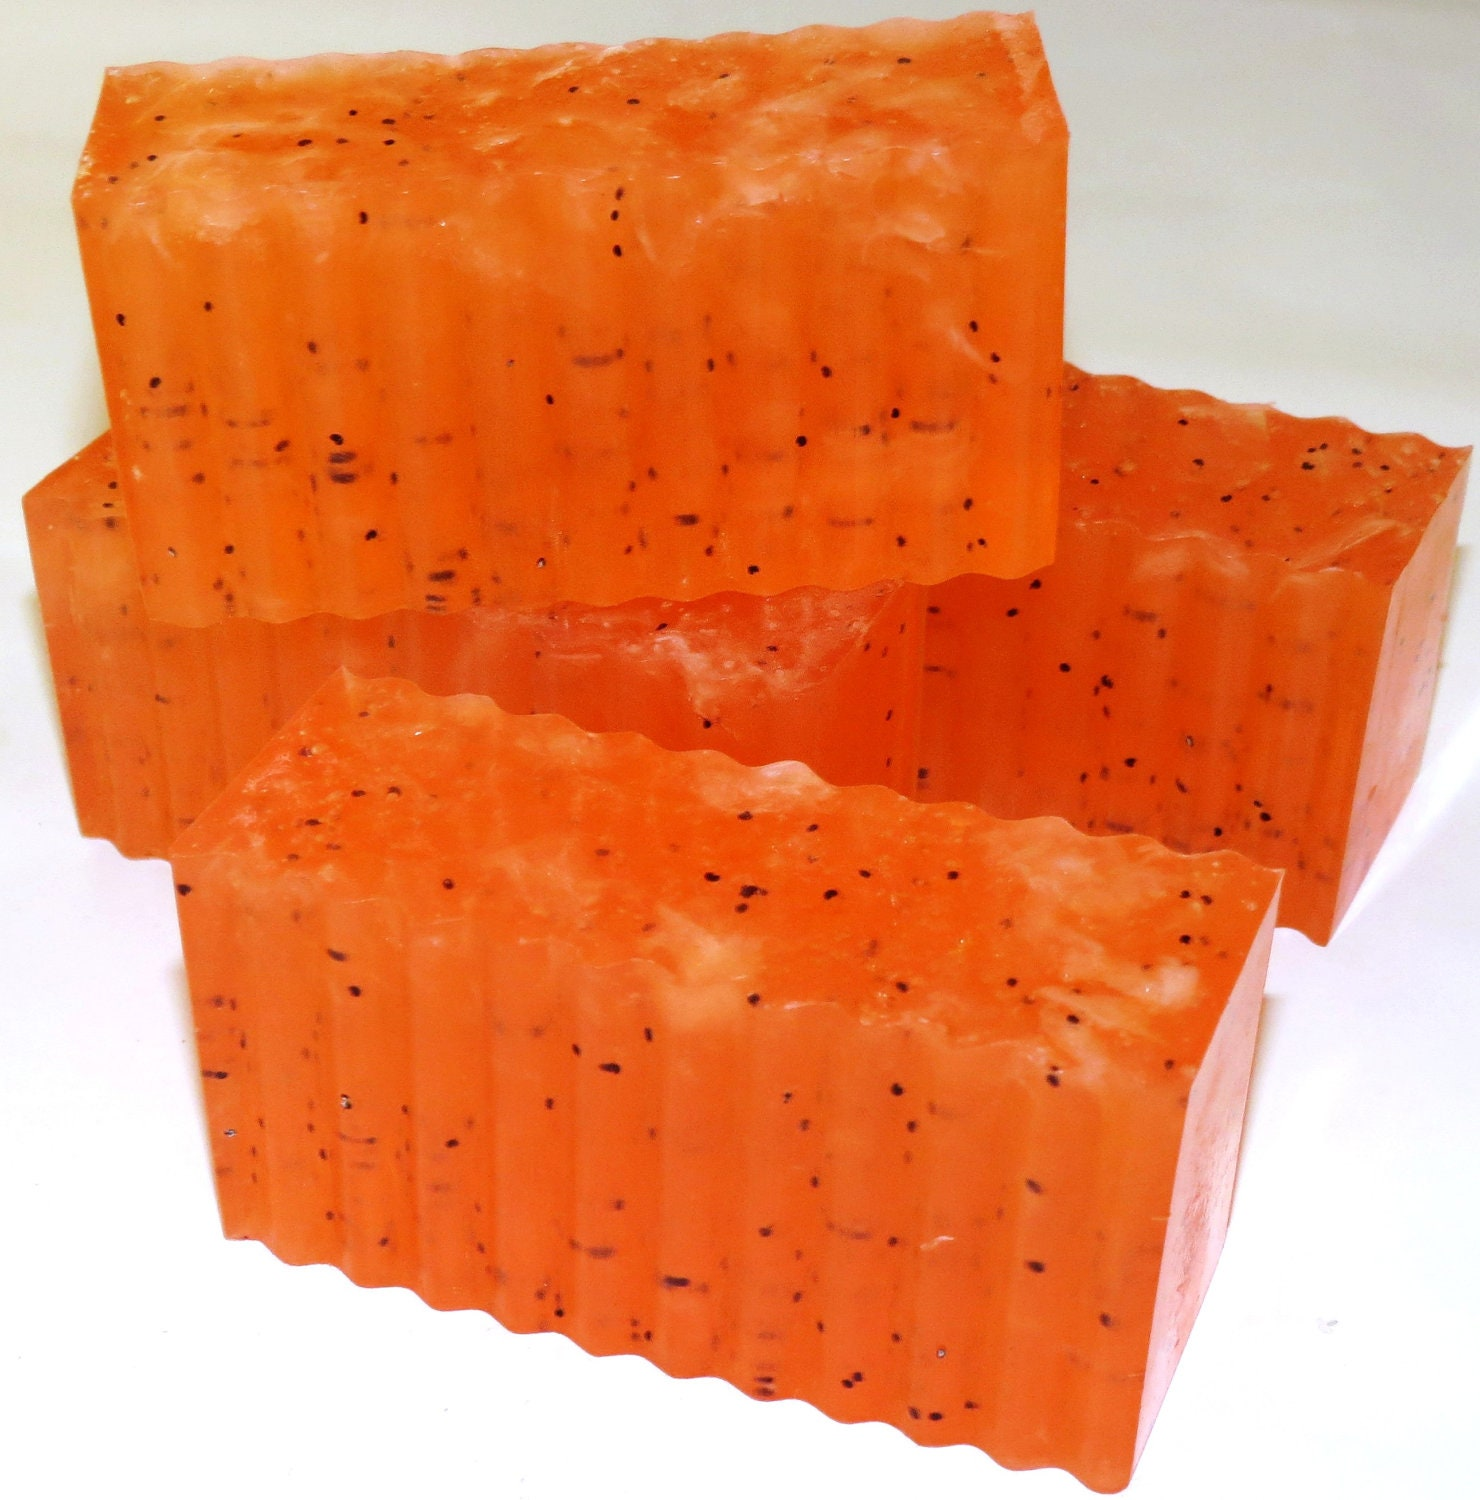 Anise and Orange Soap with Poppy and Jojoba - NaturesPurityBath